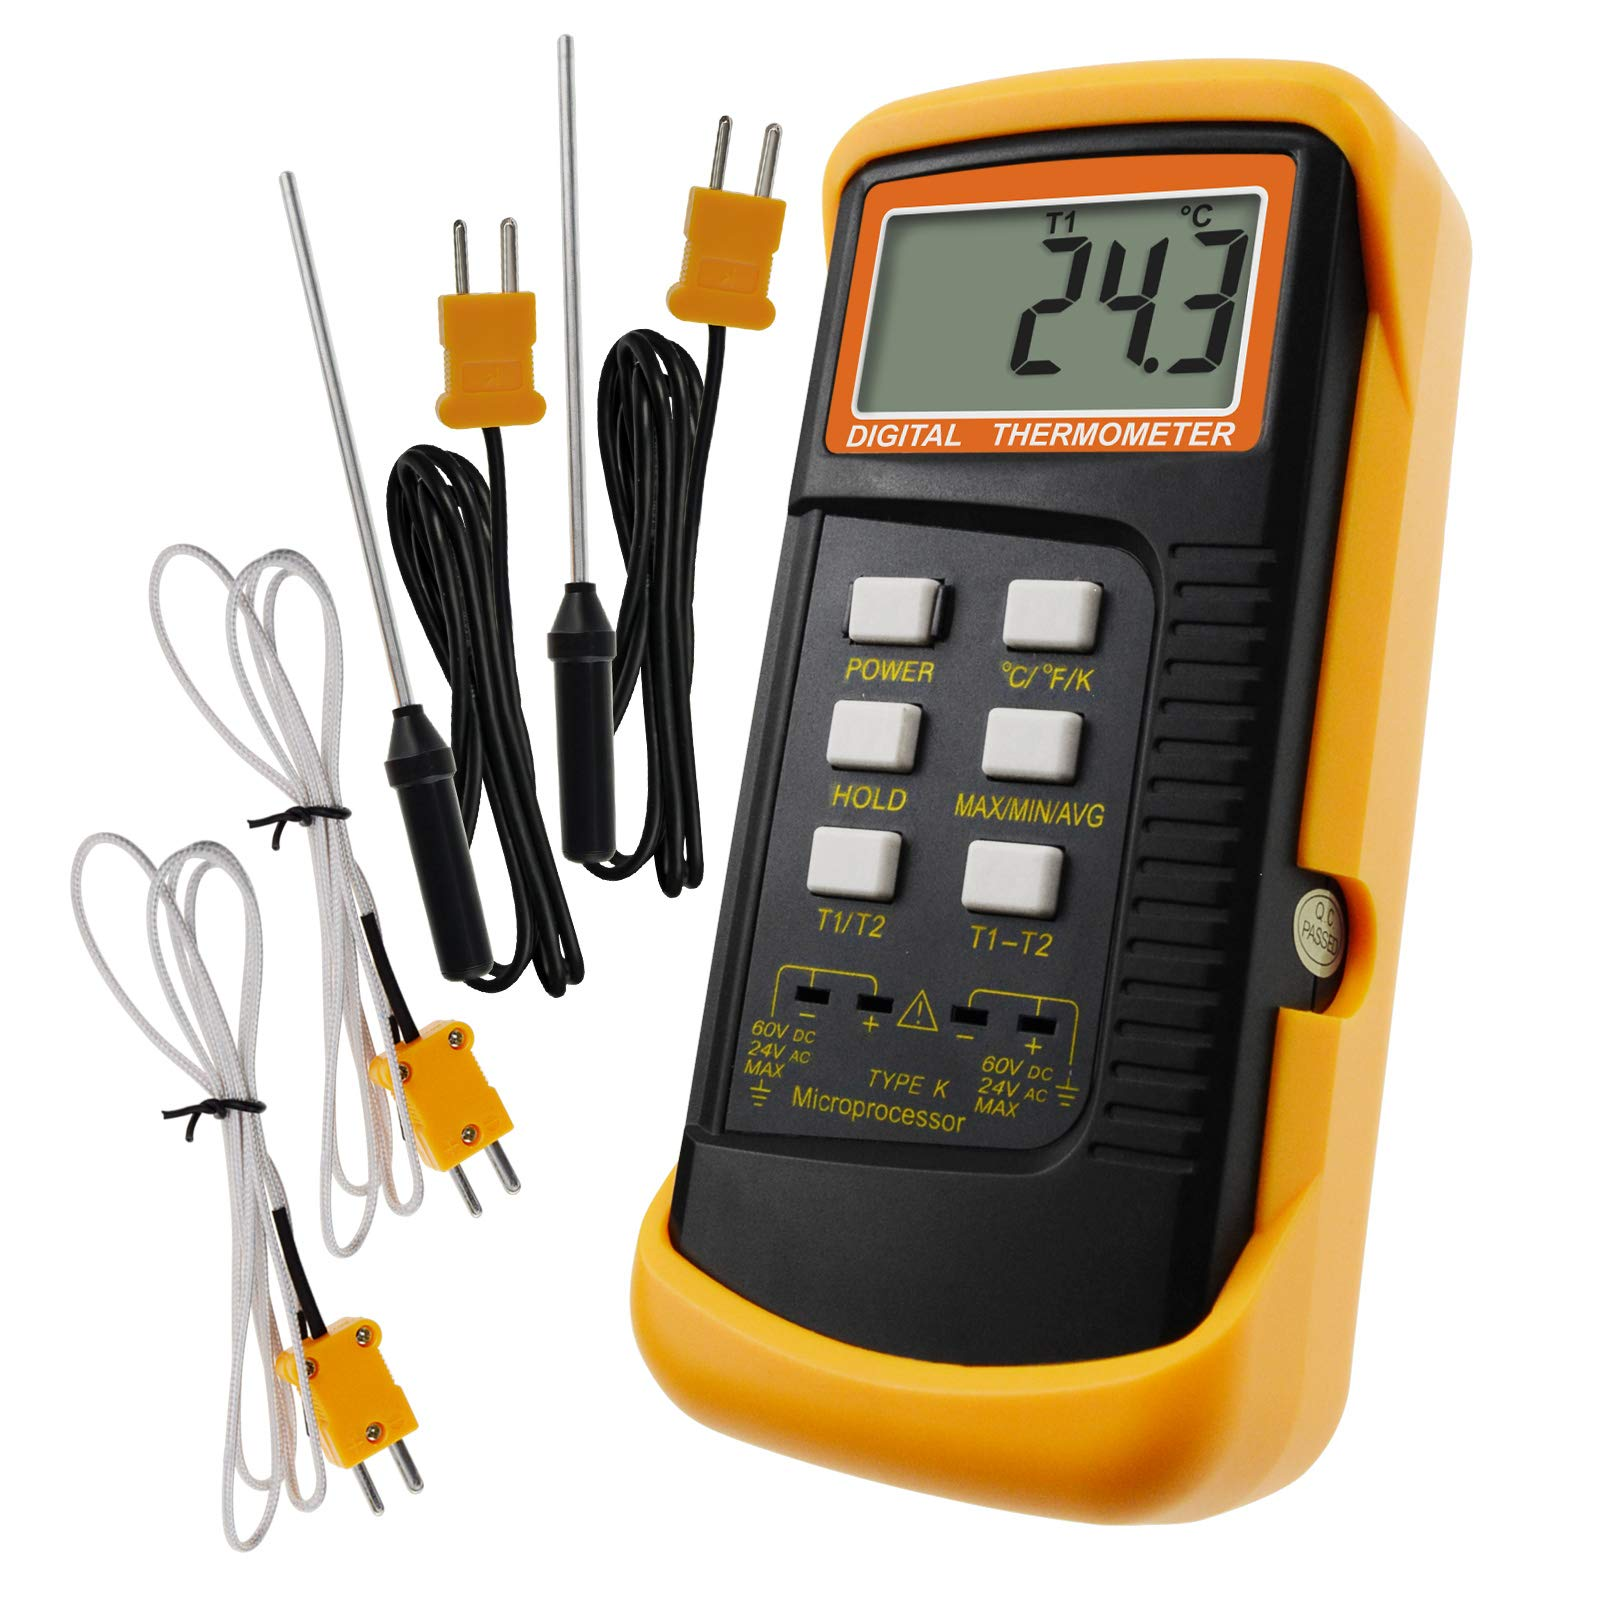 Digital 2 Channels K-Type Thermometer w/ 4 Thermocouples (Wired & Stainless Steel), -50~1300°C (-58~2372°F) Handheld Desktop High Temperature Kelvin Scale Dual Measurement Meter Sensor by Gain Express